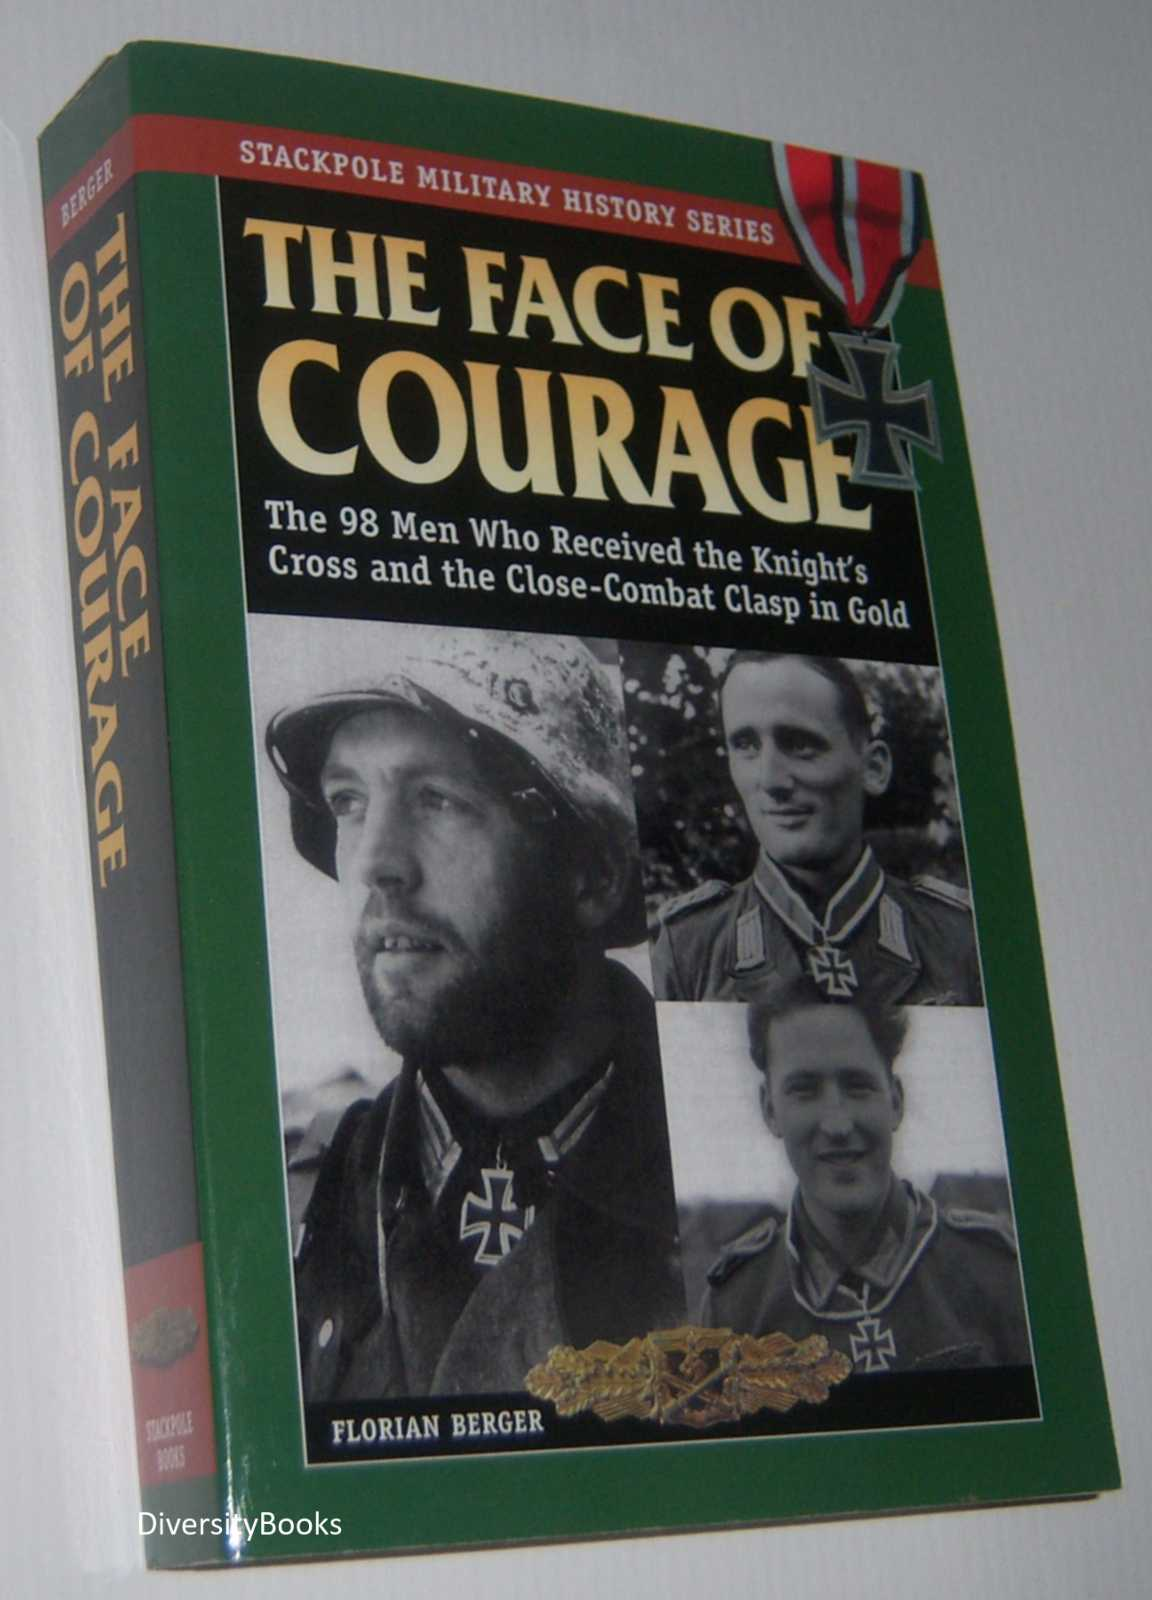 Image for THE FACE OF COURAGE: The 98 Men Who Received the Knight's Cross and the Close -Combat Clasp in Gold